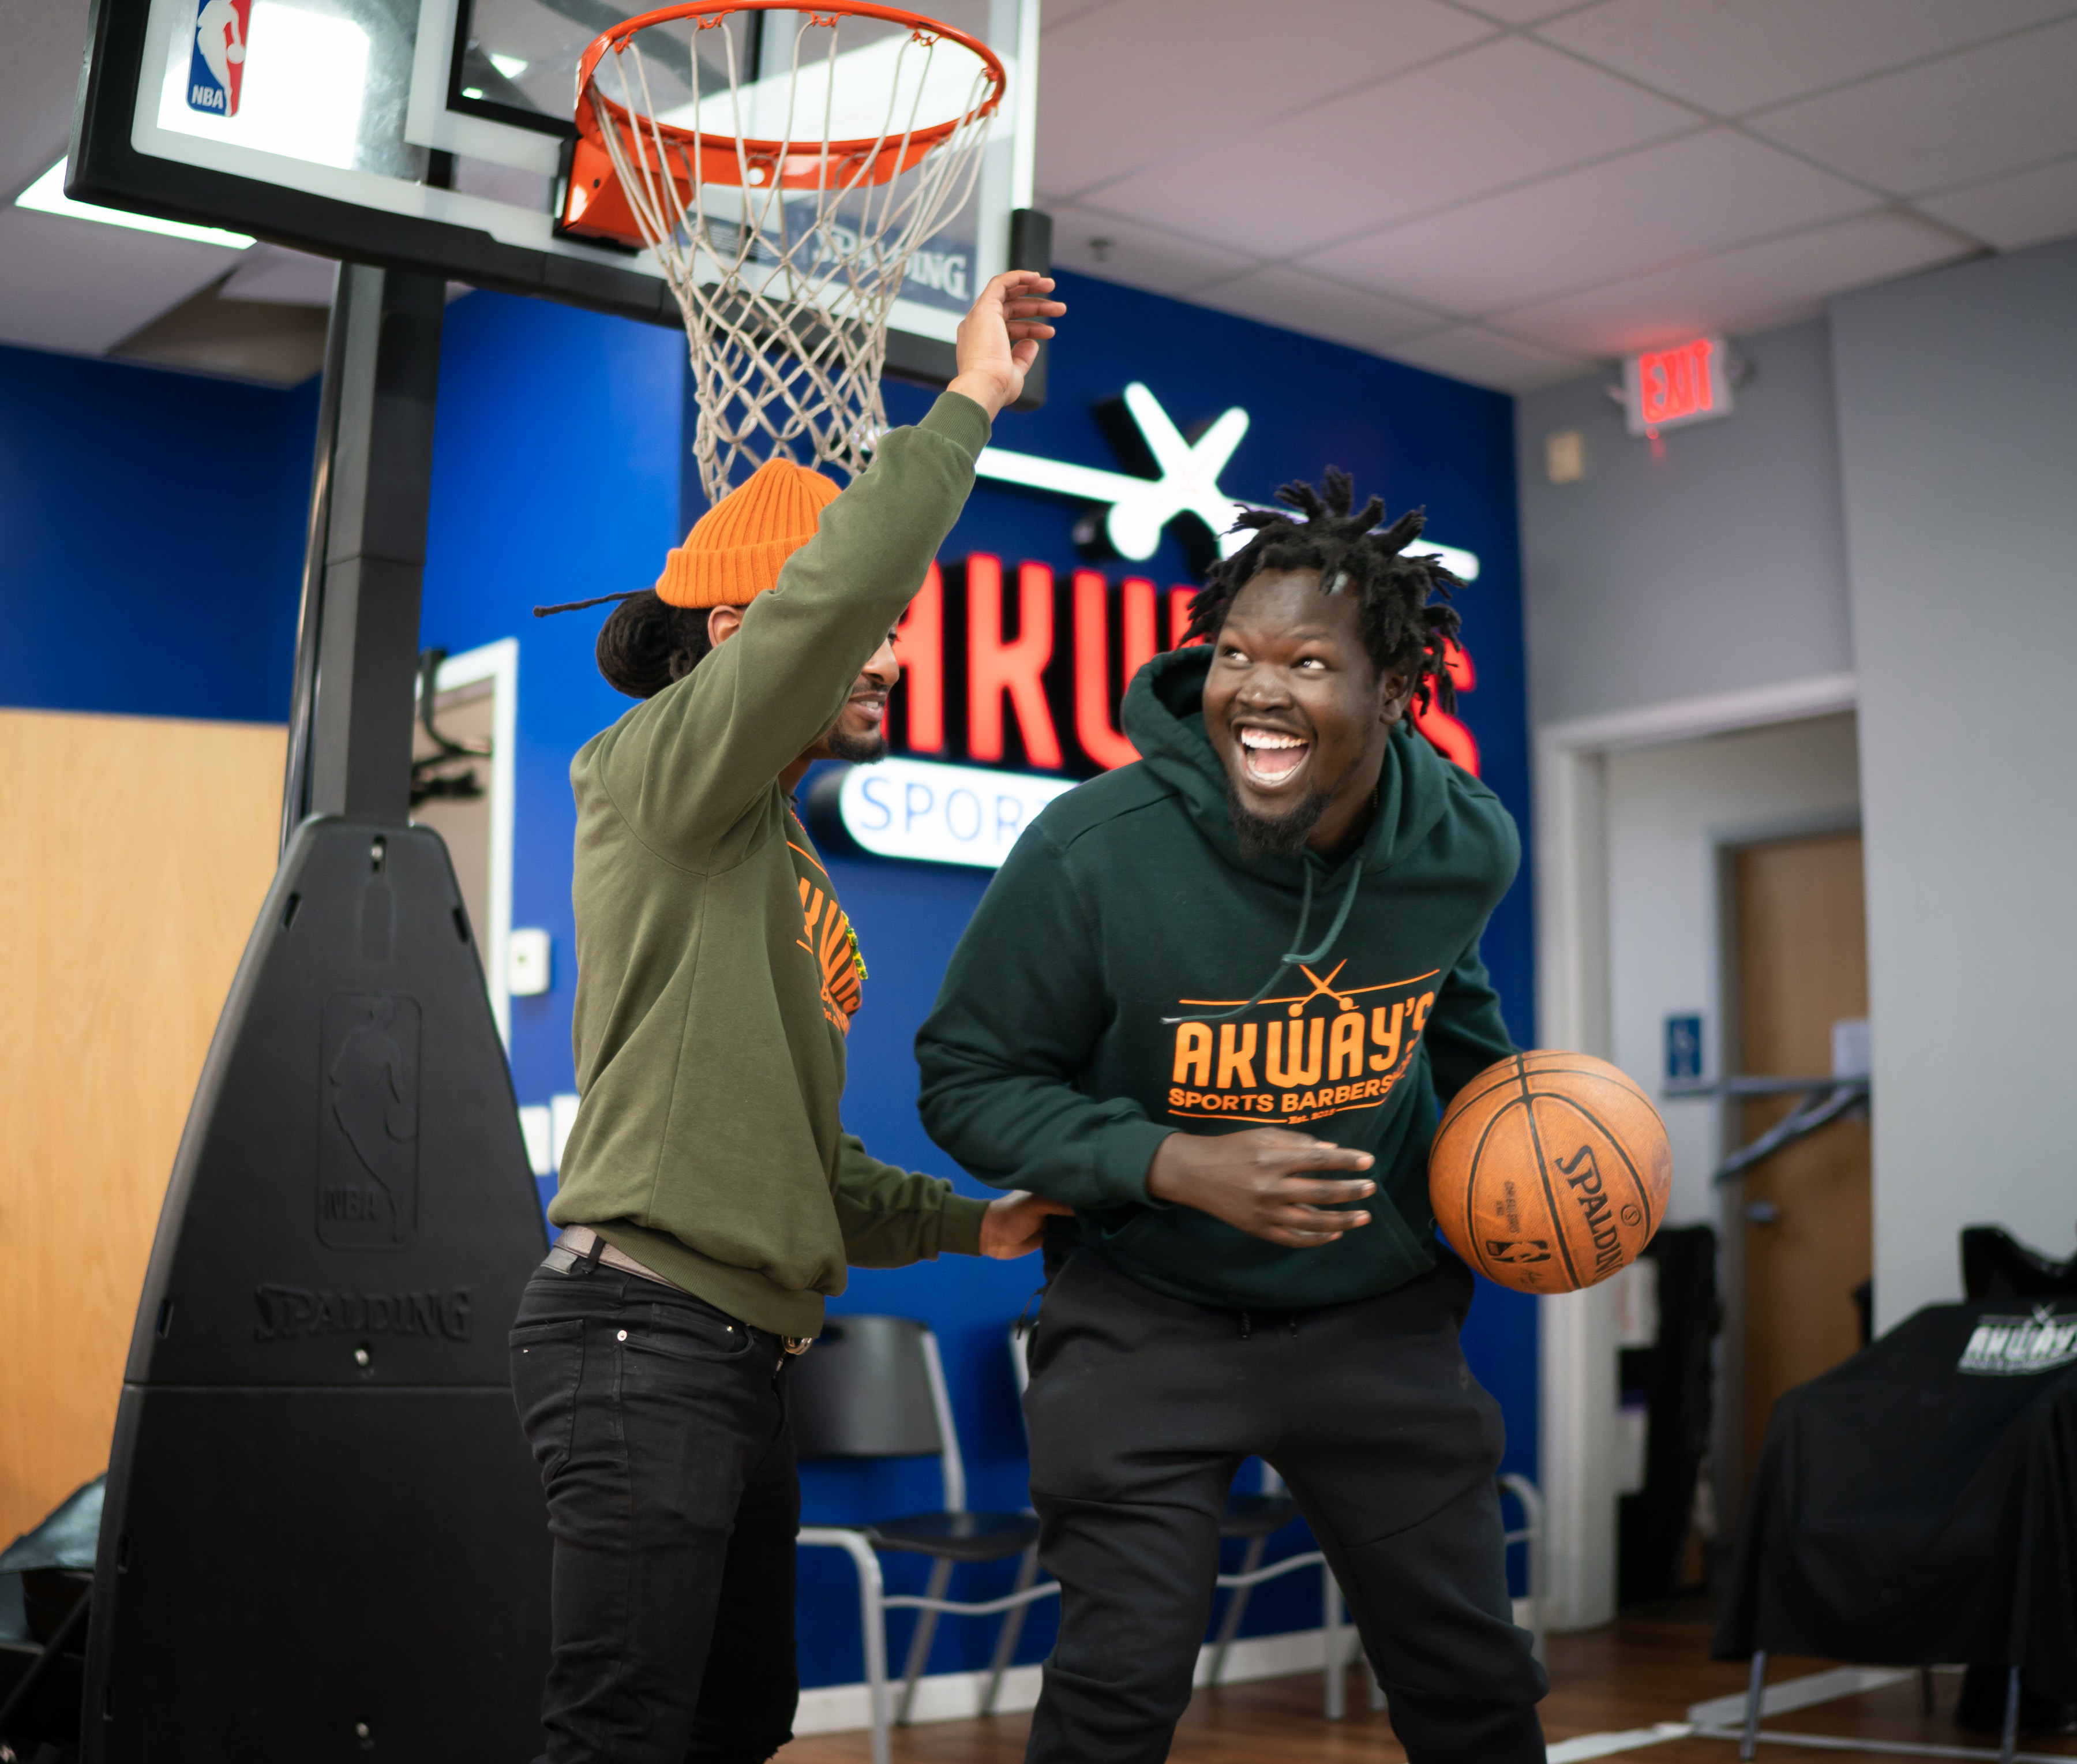 Akeem Akway, right, shoots hoops during some down time at their barbershop with cousin and business partner, Nathan Sheferaw.